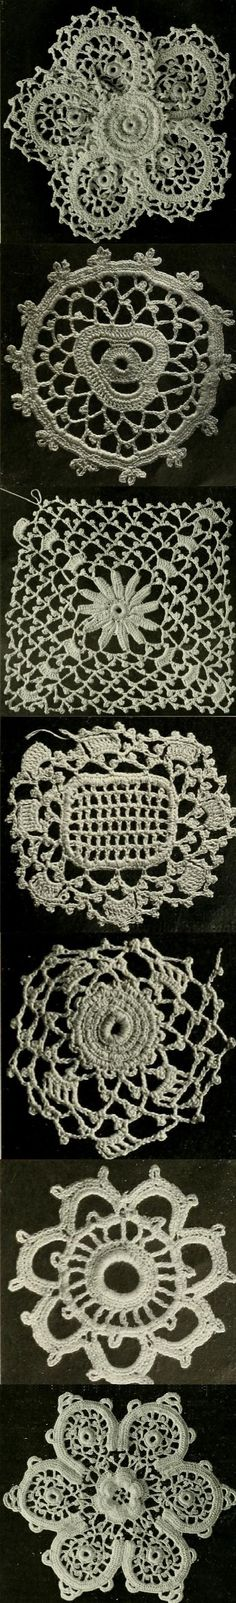 Learn baby Irish crochet lace in this book from 1930!